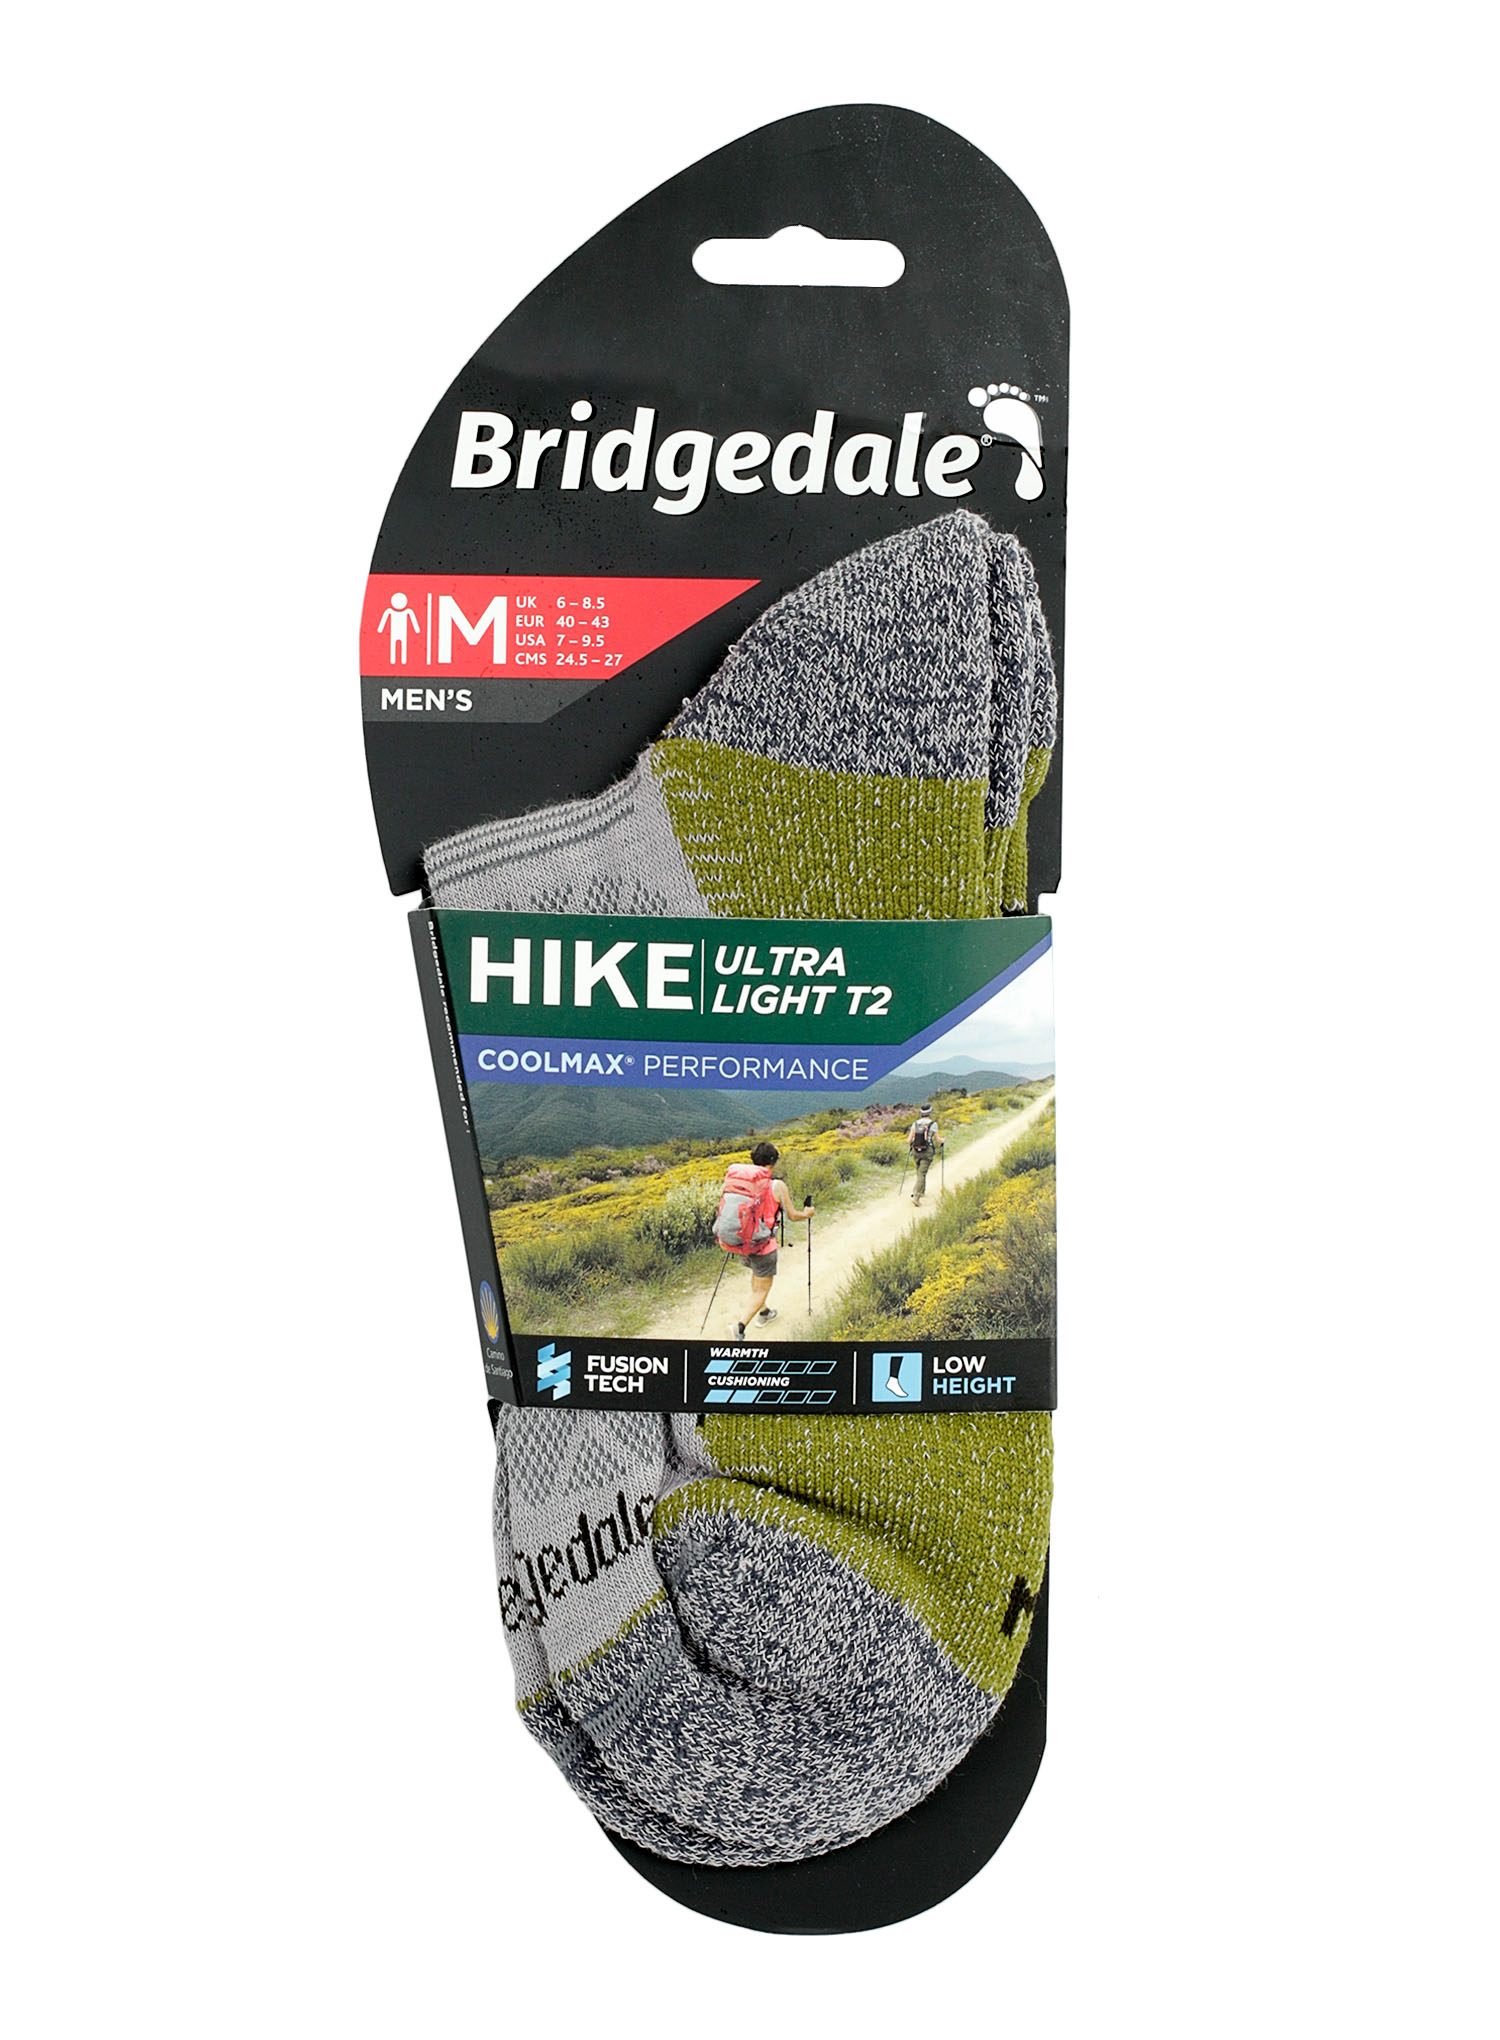 Skarpetki Bridgedale Hike Ultra Lt T2 Coolmax P Low - grey/green - zdjęcie nr. 2